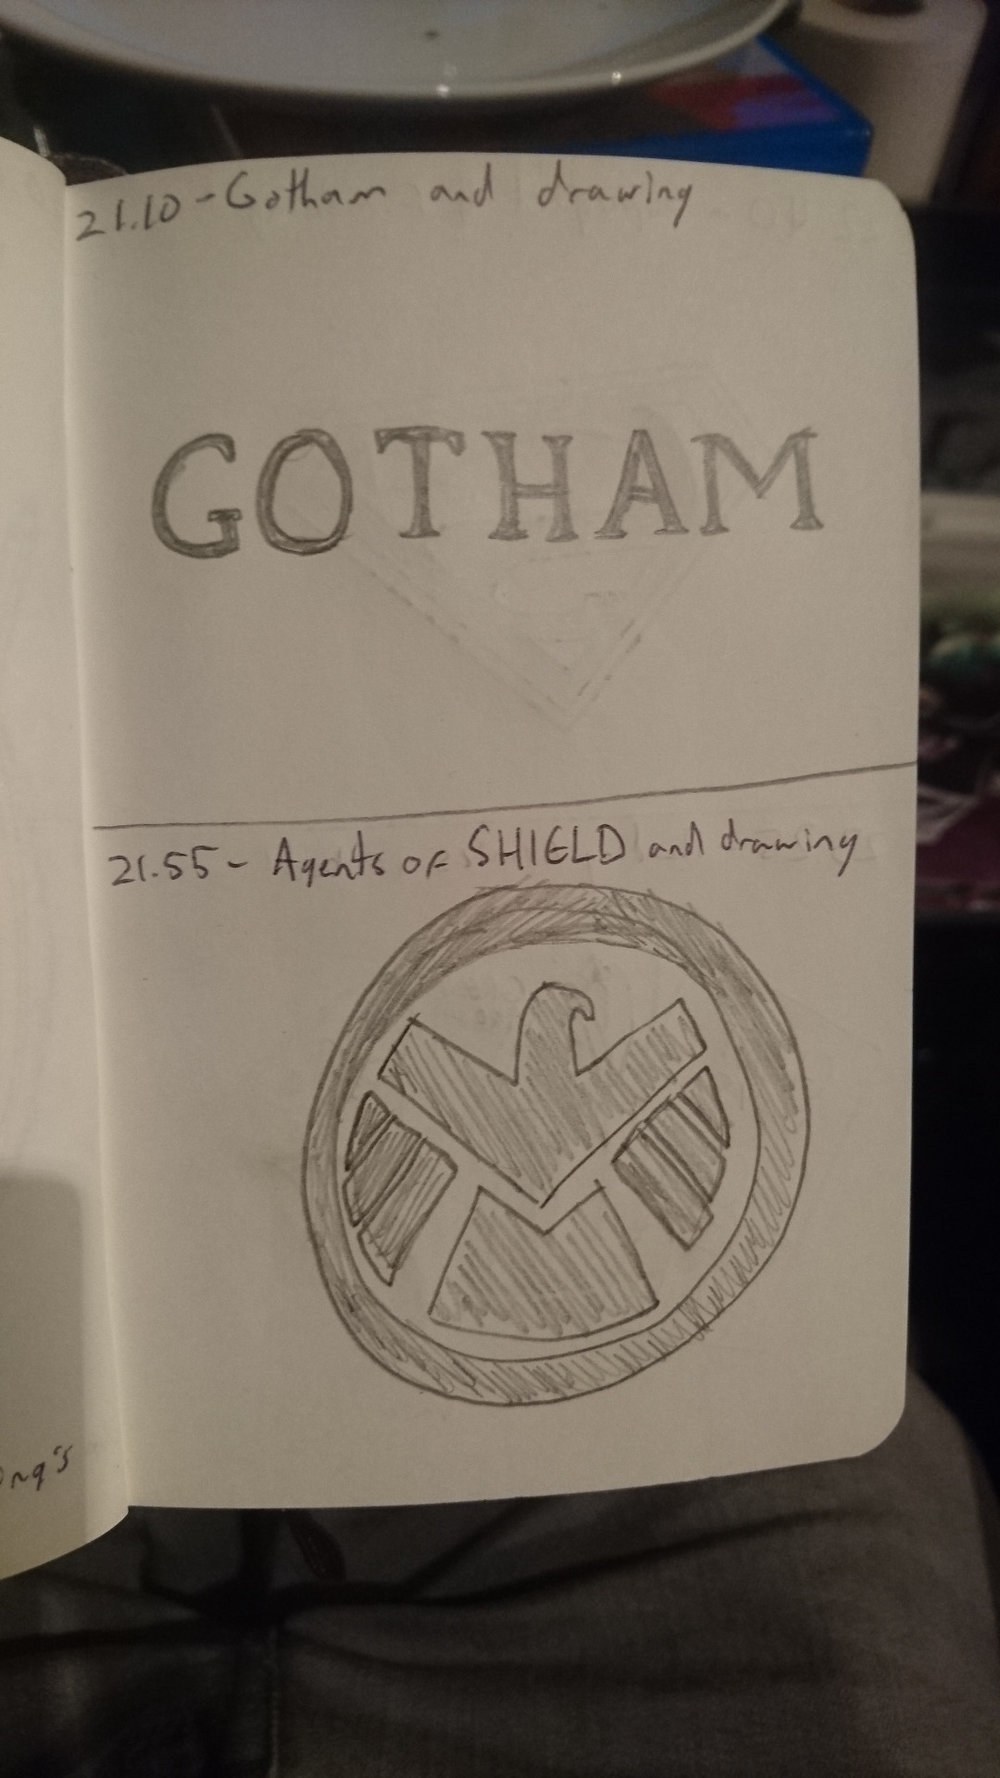 21:10:  Gotham and drawing  21:55:  Agents of SHIELD and drawing